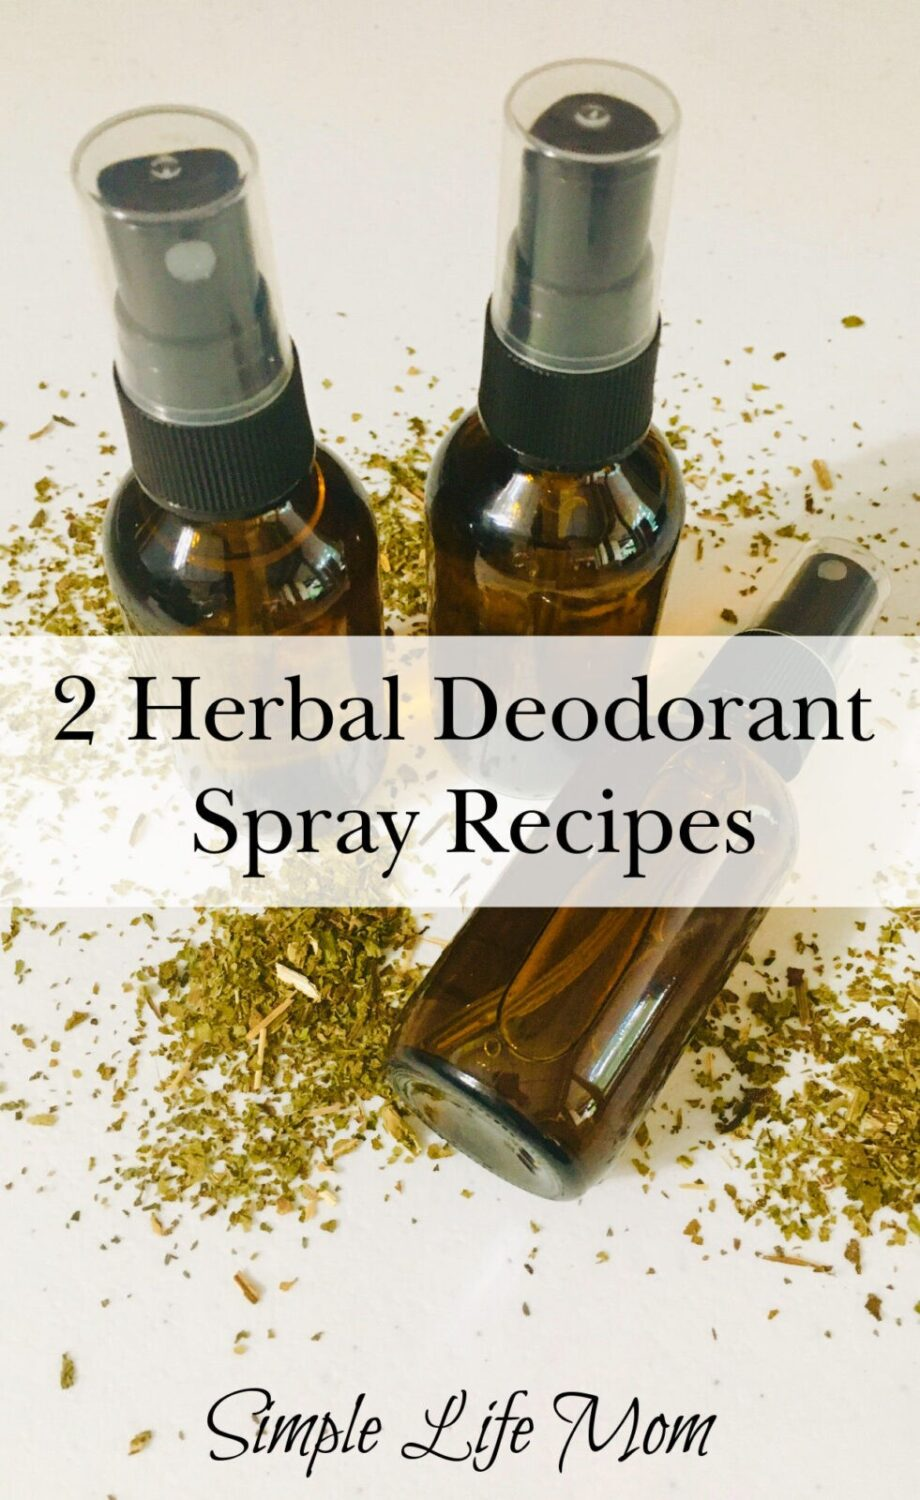 2 Herbal Deodorant Spray Recipes